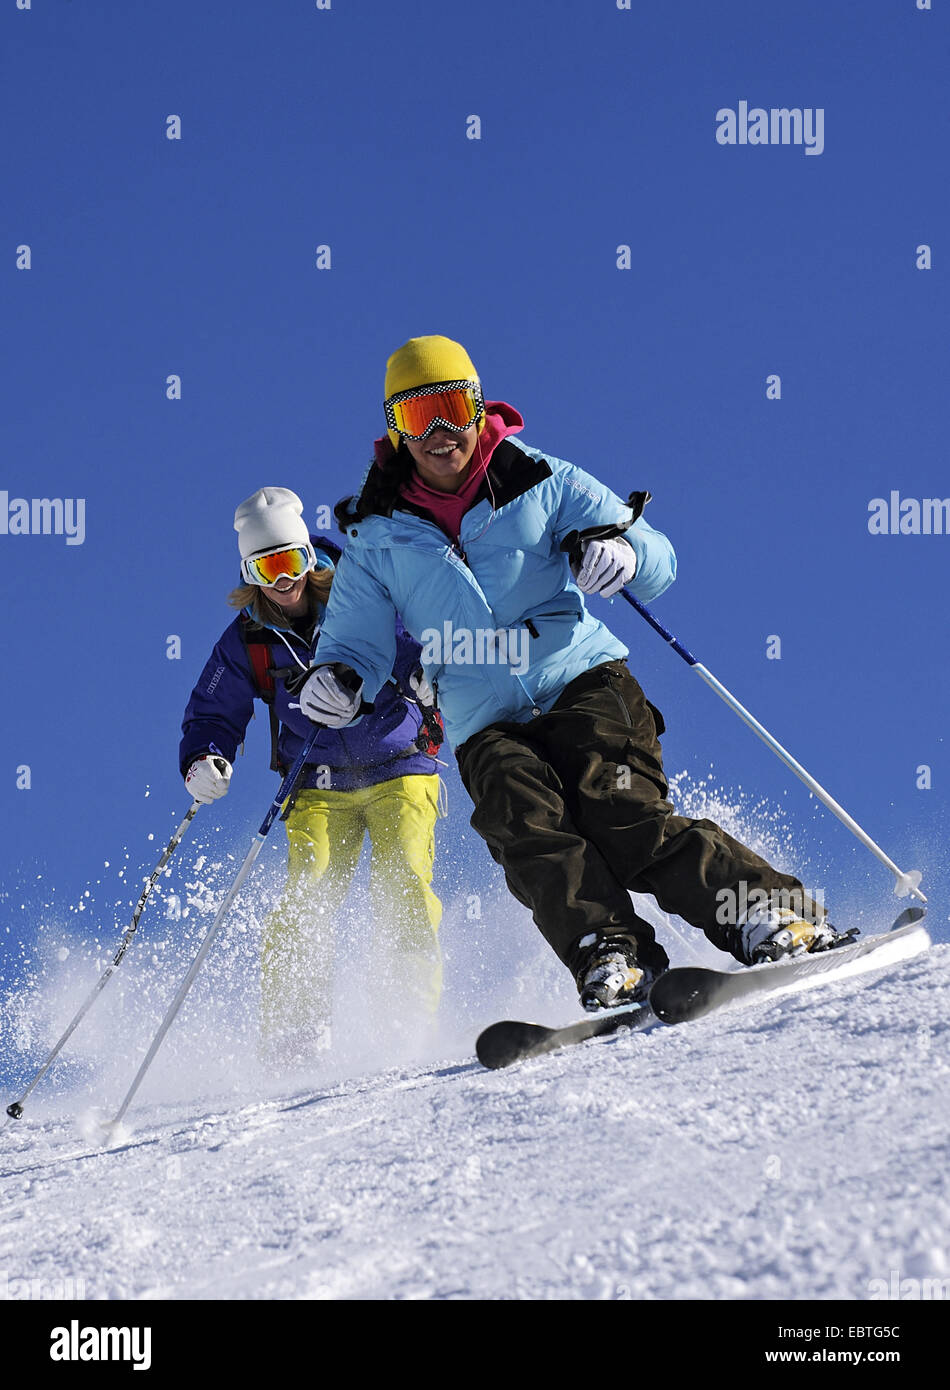 two skiers on ski run, France - Stock Image